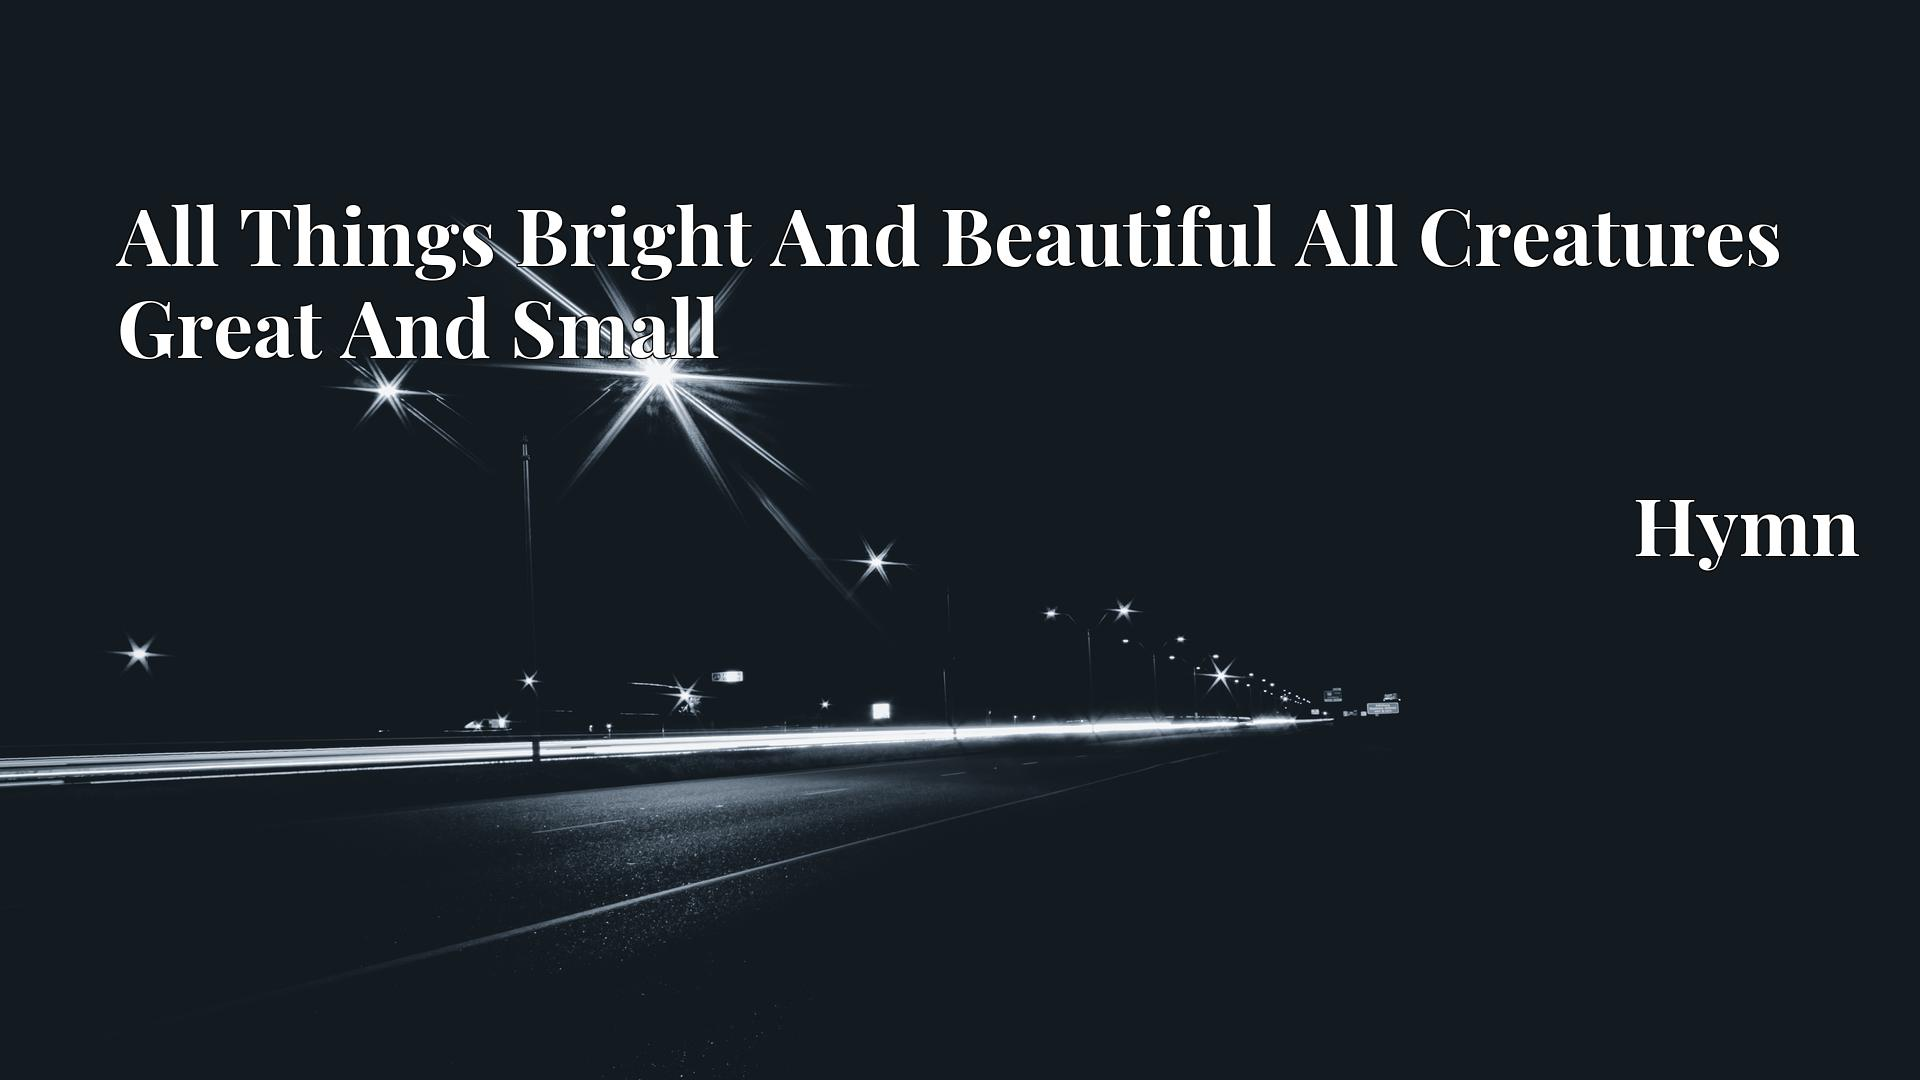 All Things Bright And Beautiful All Creatures Great And Small - Hymn